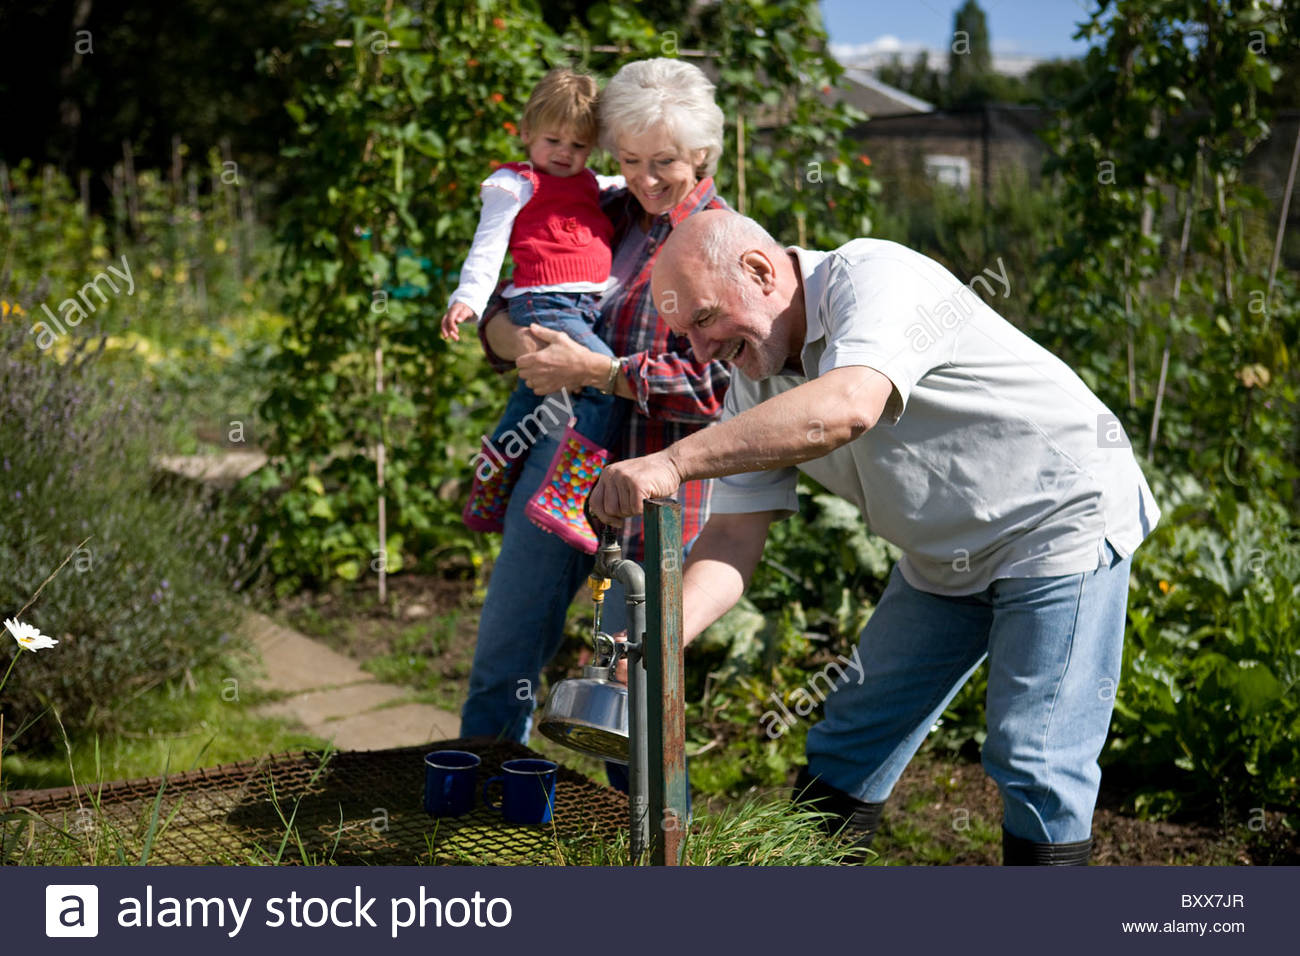 A family filling a kettle on an allotment - Stock Image